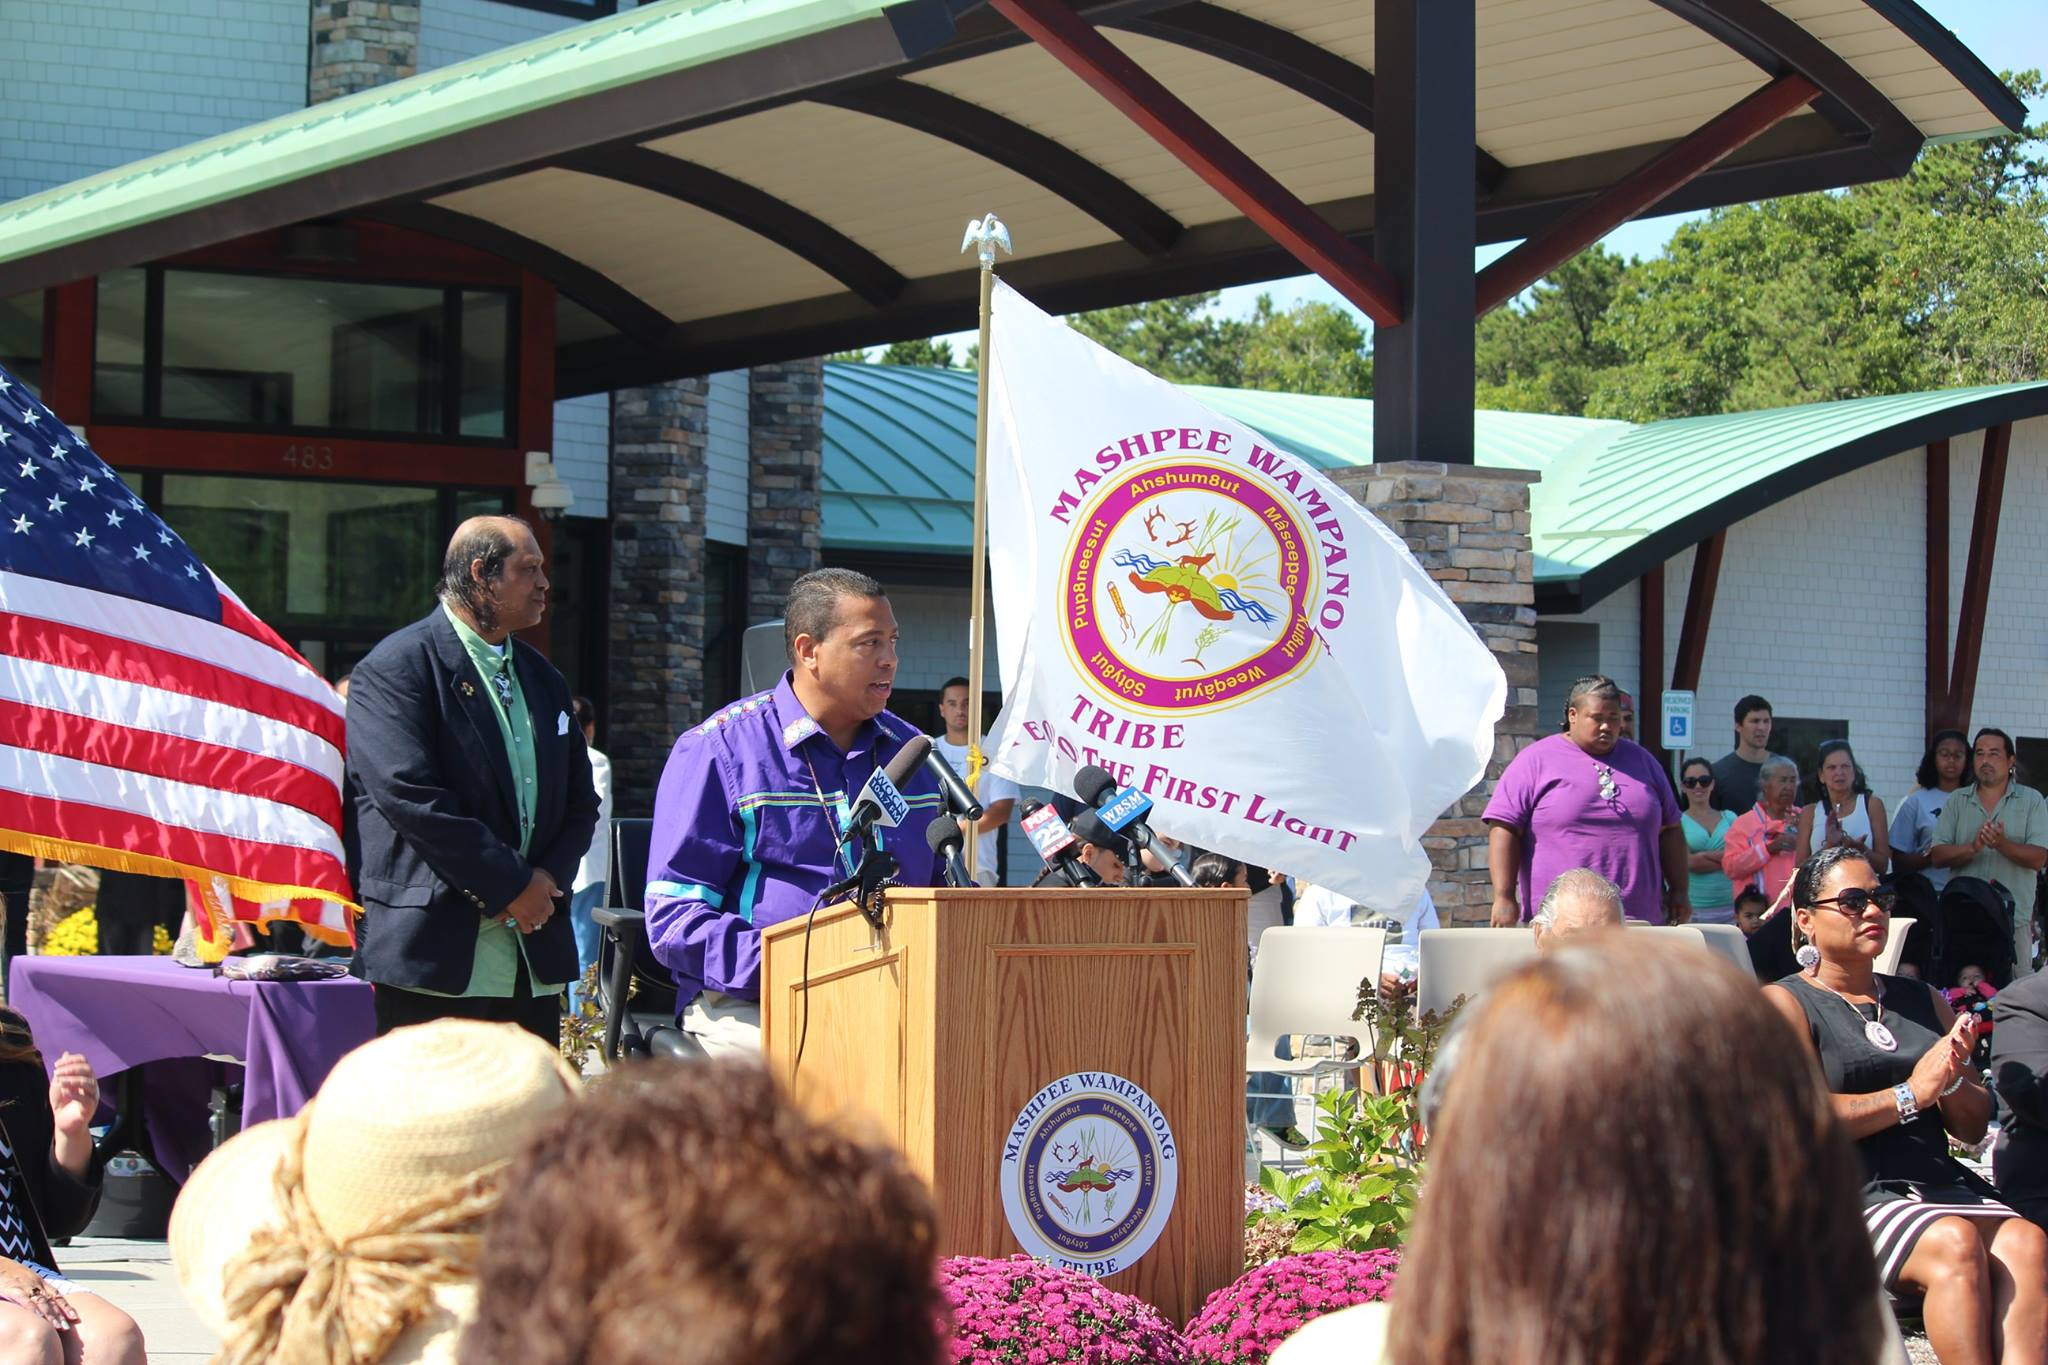 Mashpee Wampanoag Tribe confident of casino bid despite lawsuit